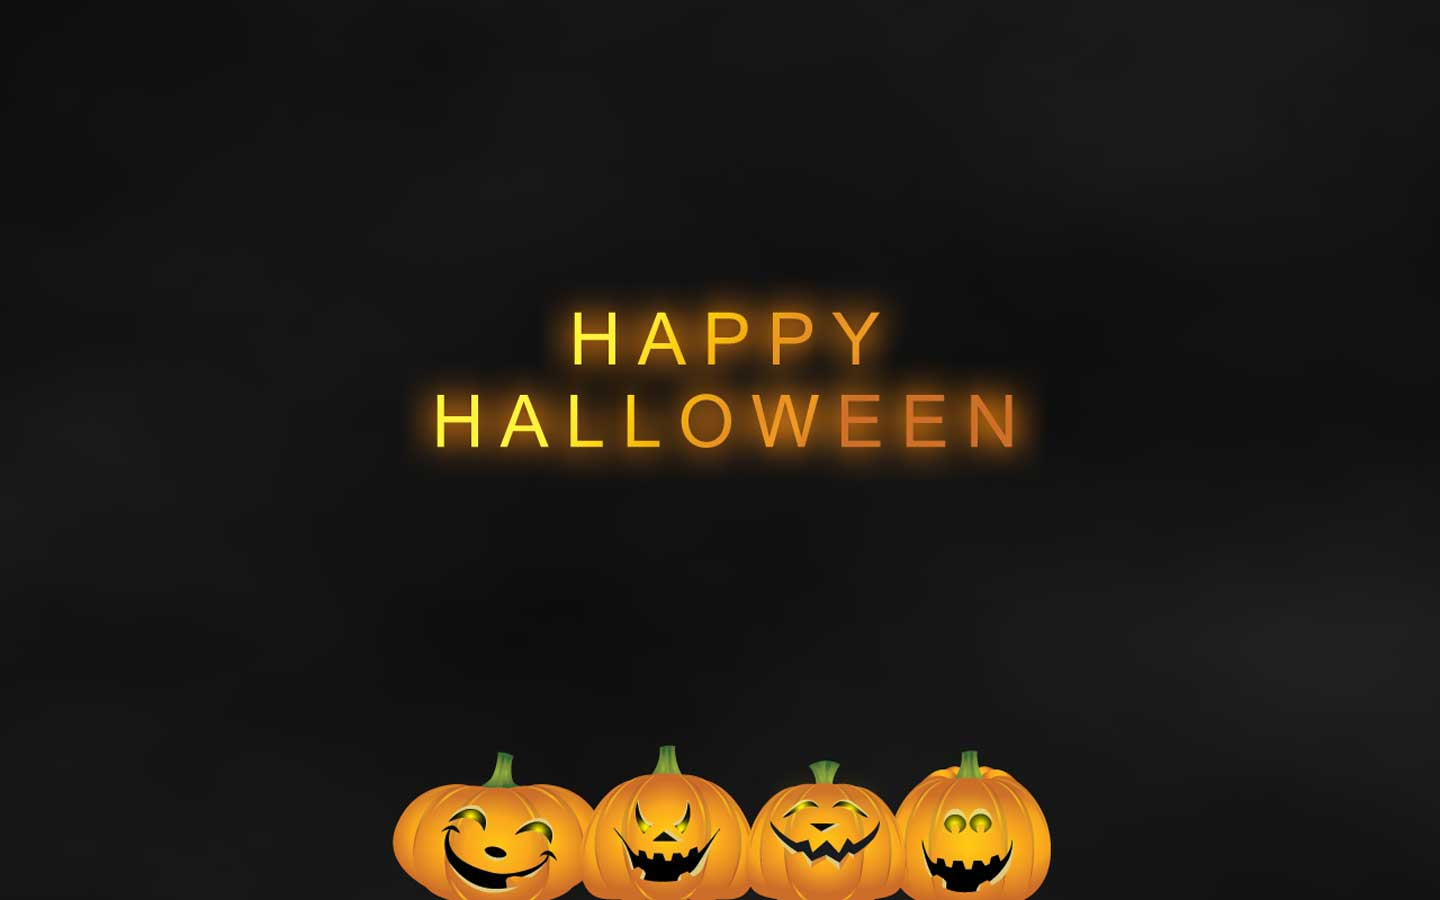 Wallpapers Happy Halloween 1440x900